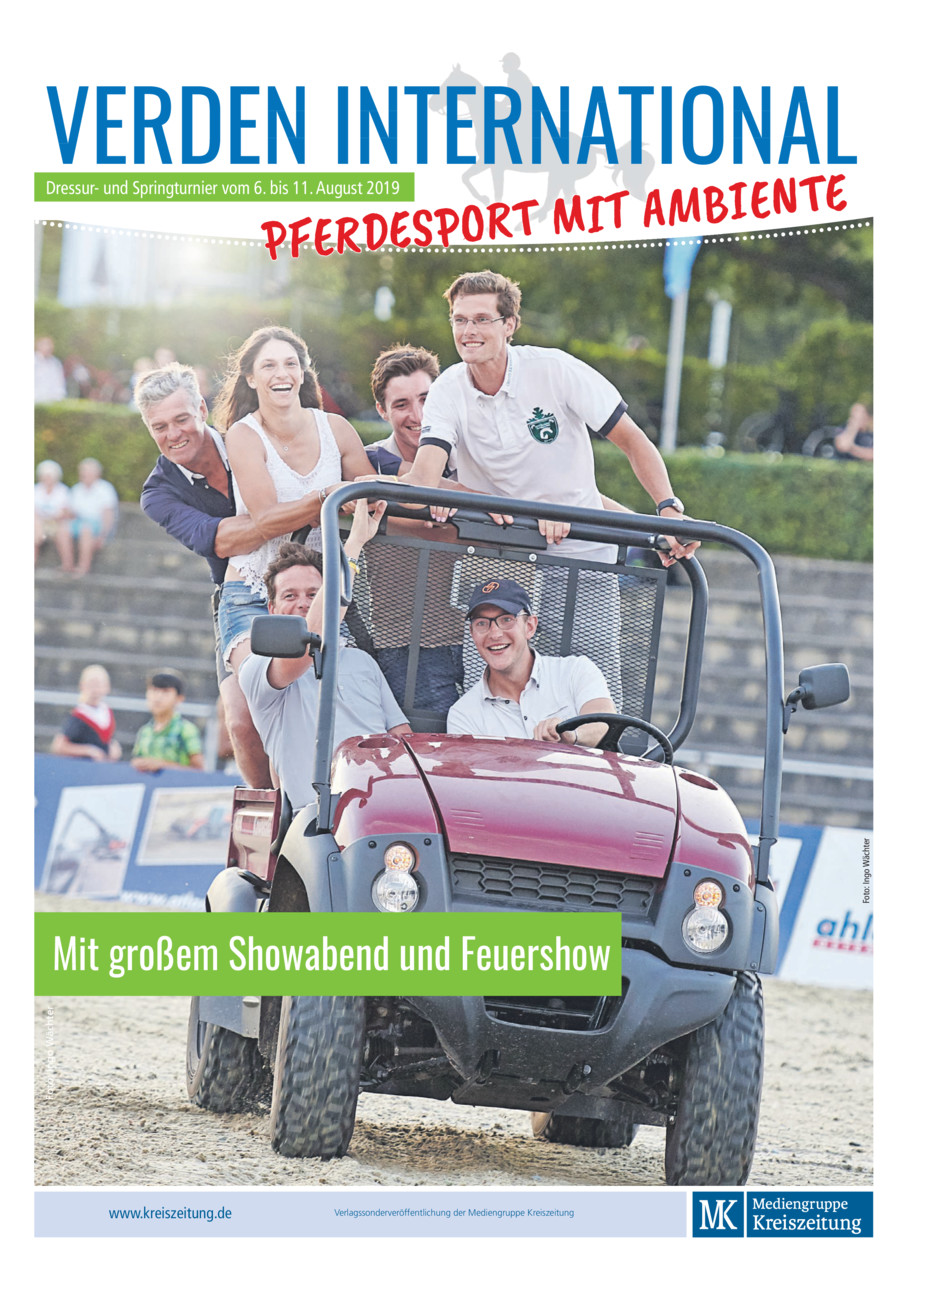 Verden International vom Freitag, 02.08.2019